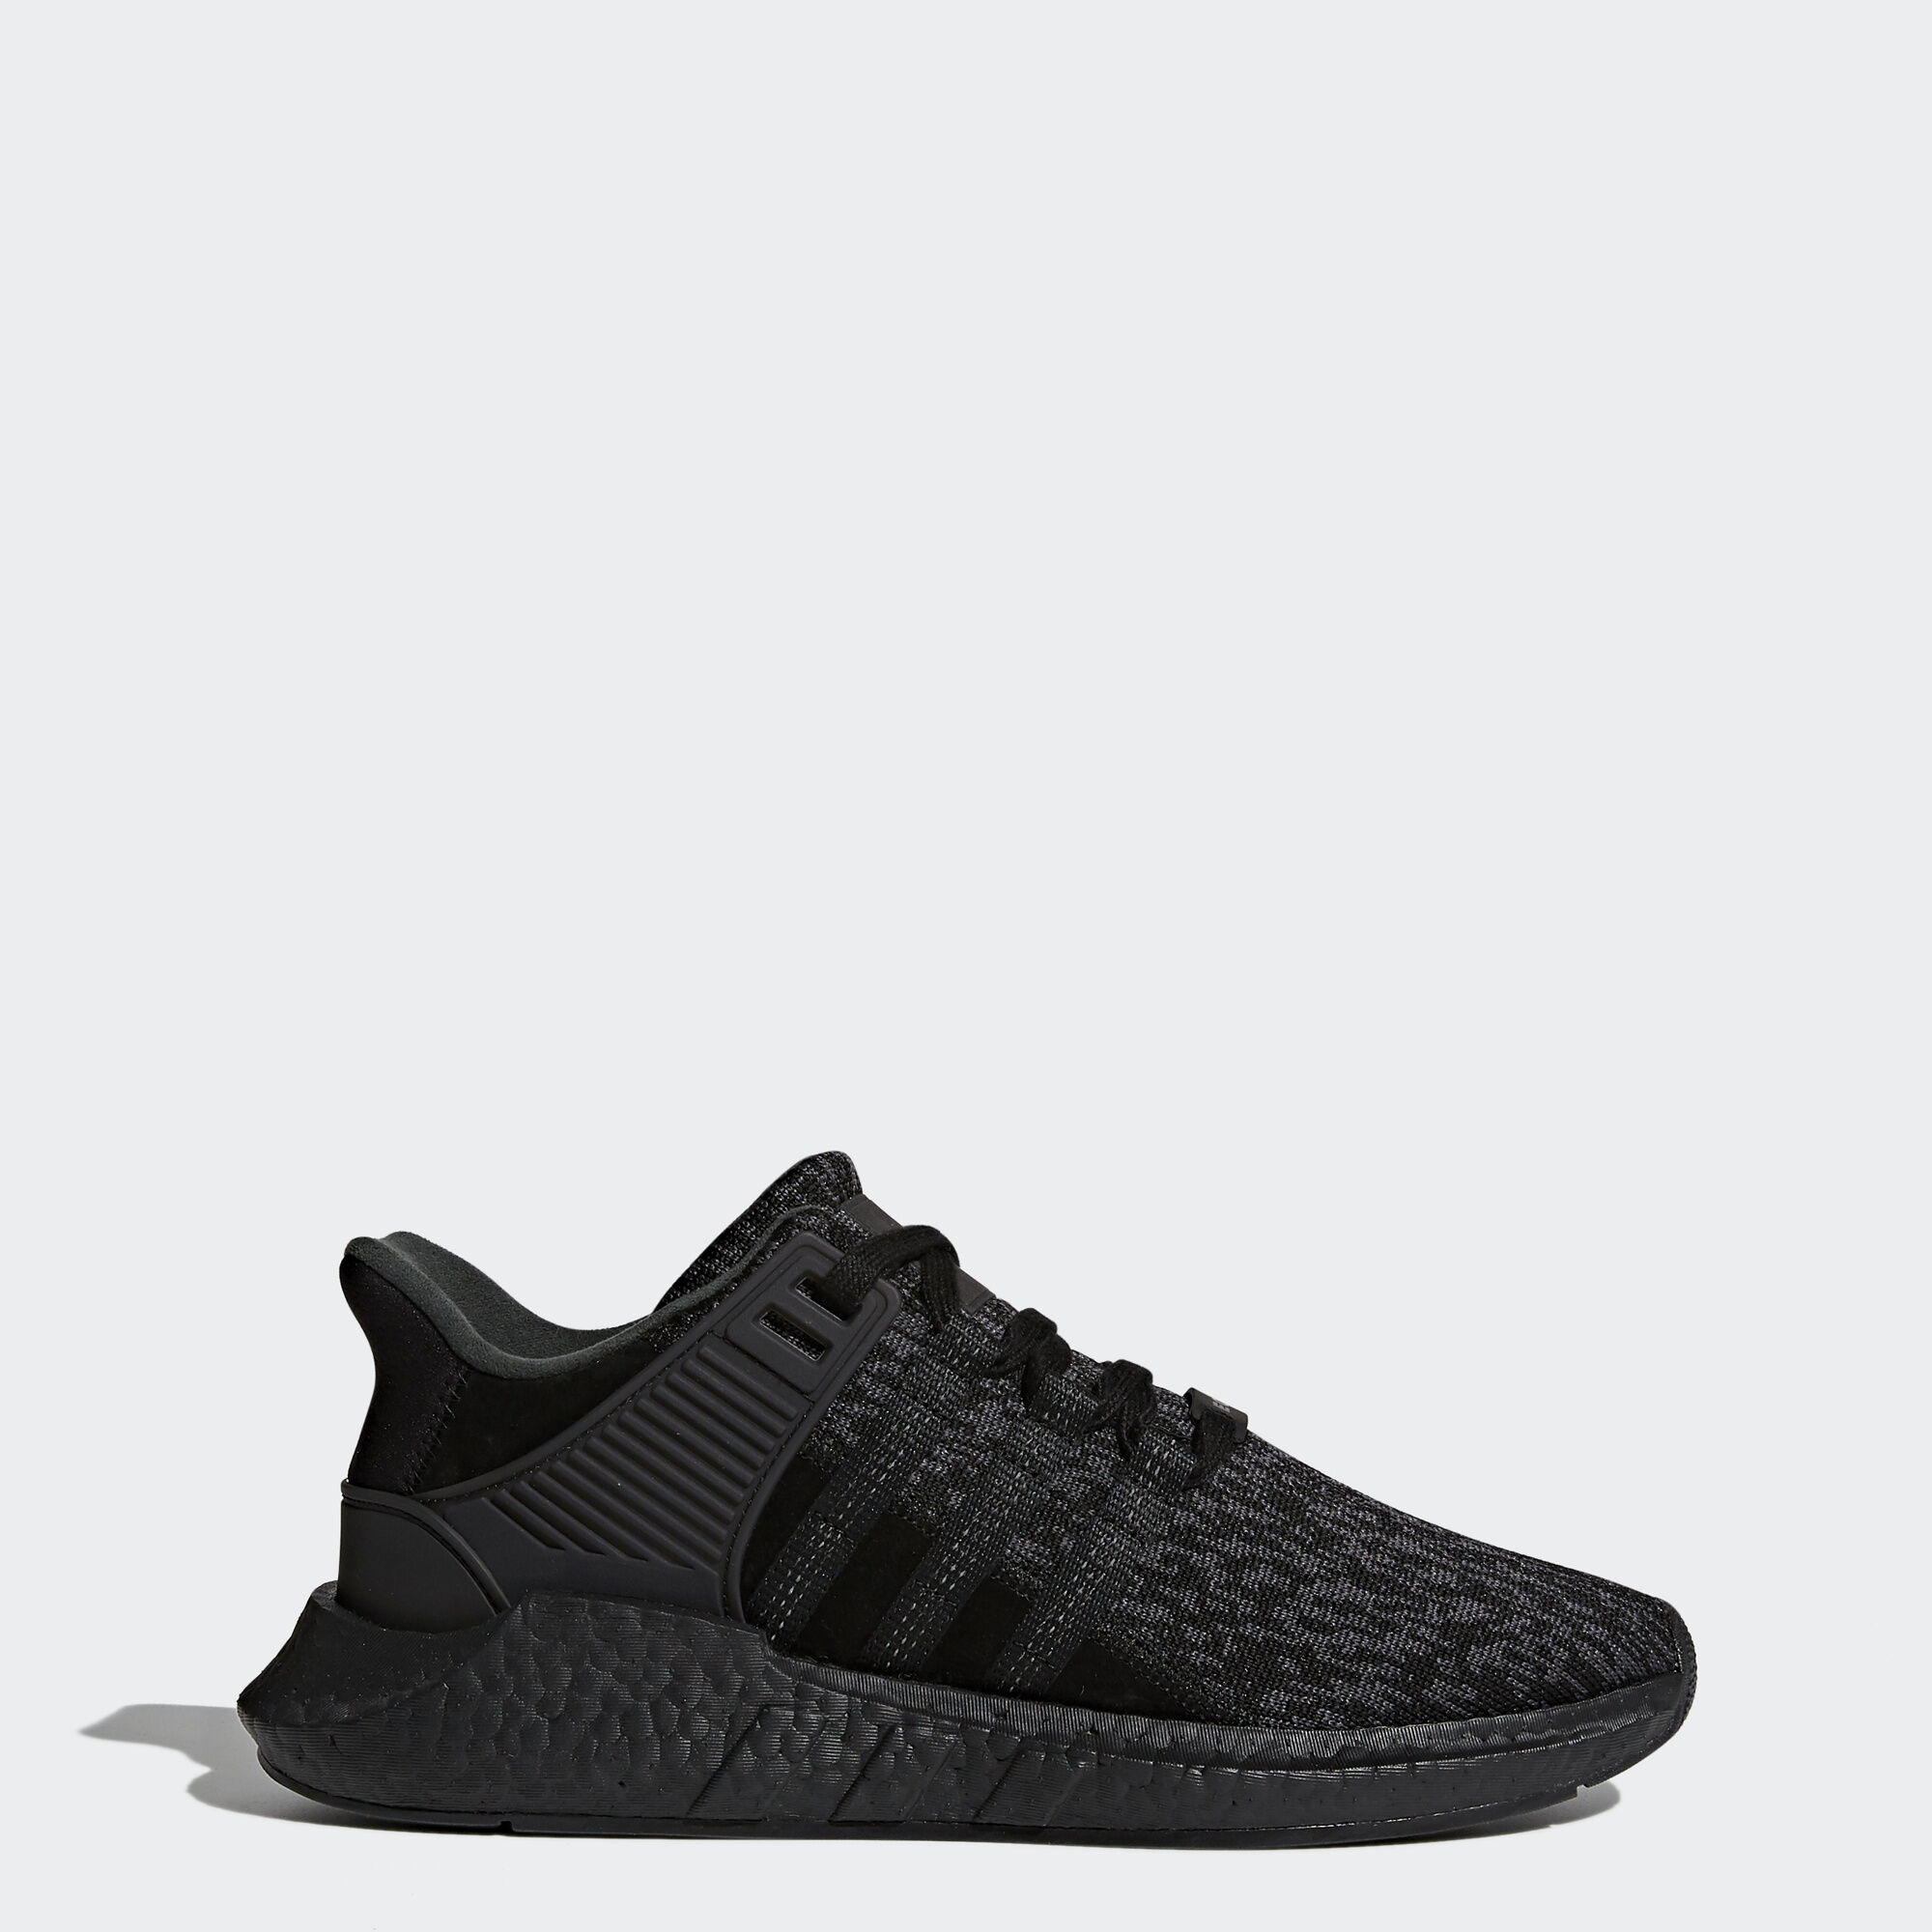 Adidas Materials Of The World India Shoes